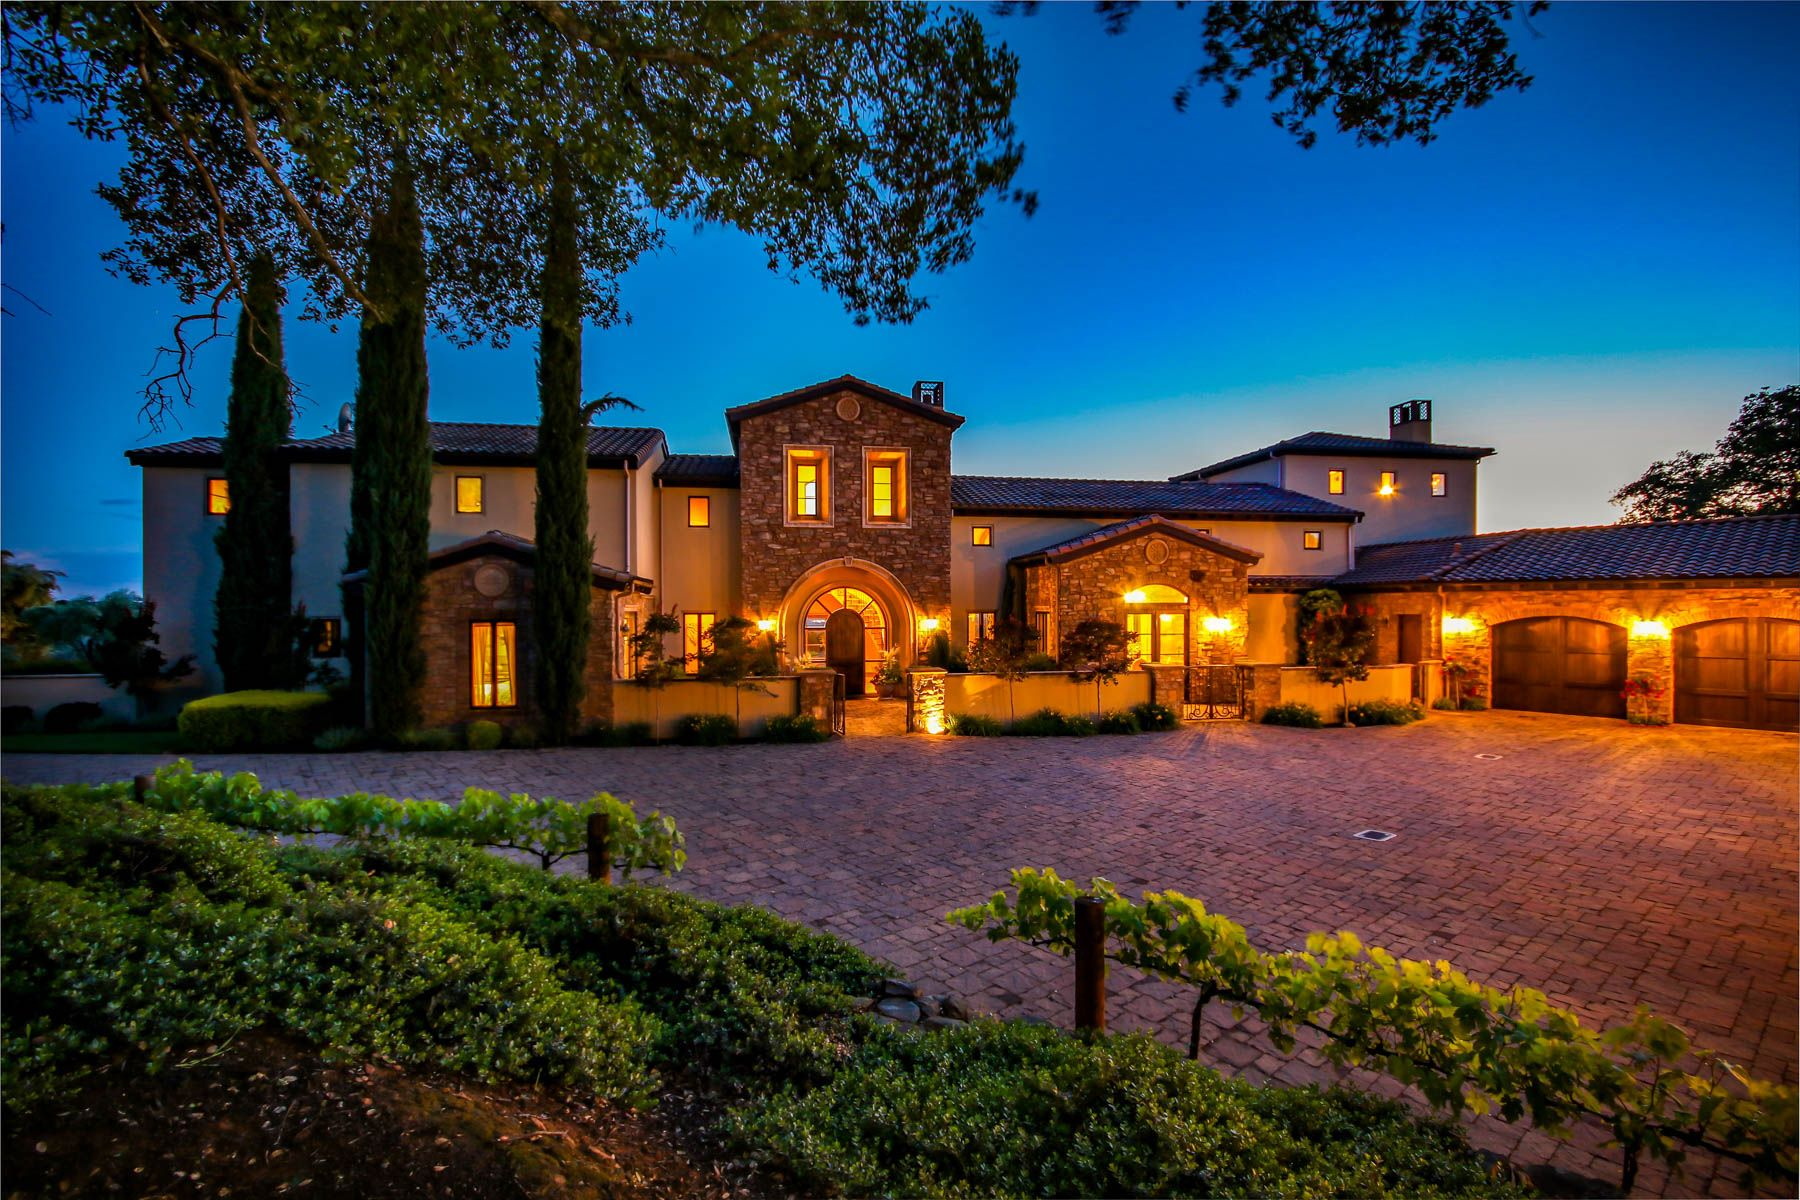 Single Family Homes for Active at 5310 Blue Oak Ranch Rd, Auburn, CA 95602 5310 Blue Oak Ranch Rd Auburn, California 95602 United States